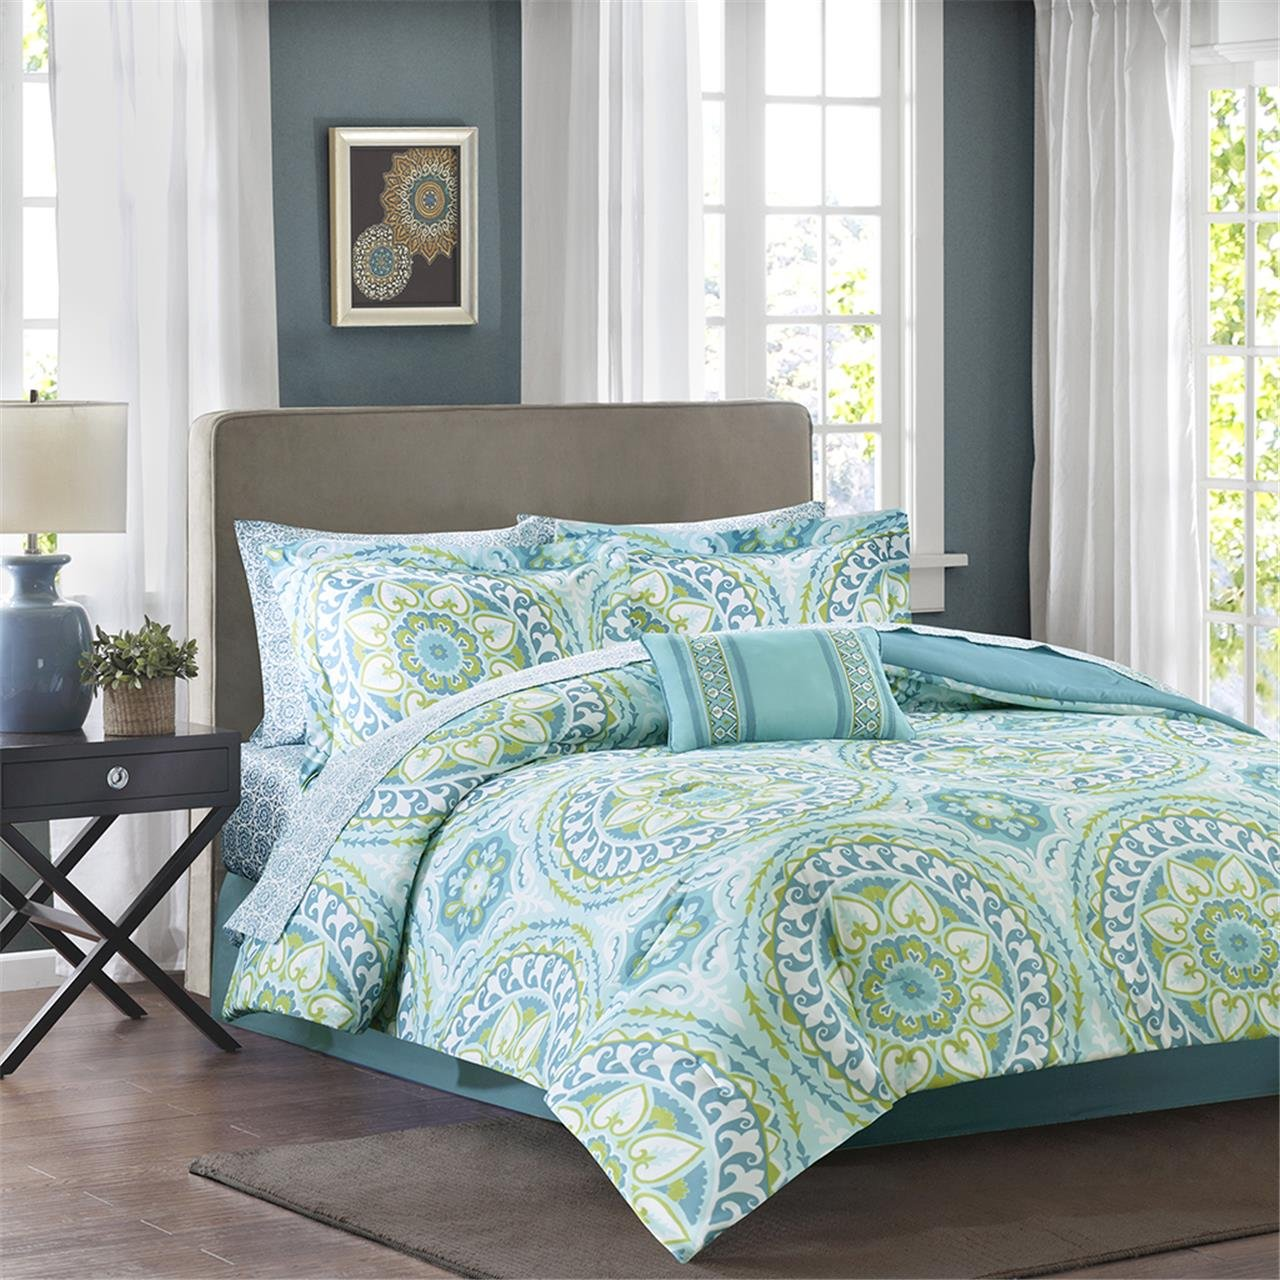 Madison Park Complete Bed & Sheet Set Cal King Aqua,Cal King